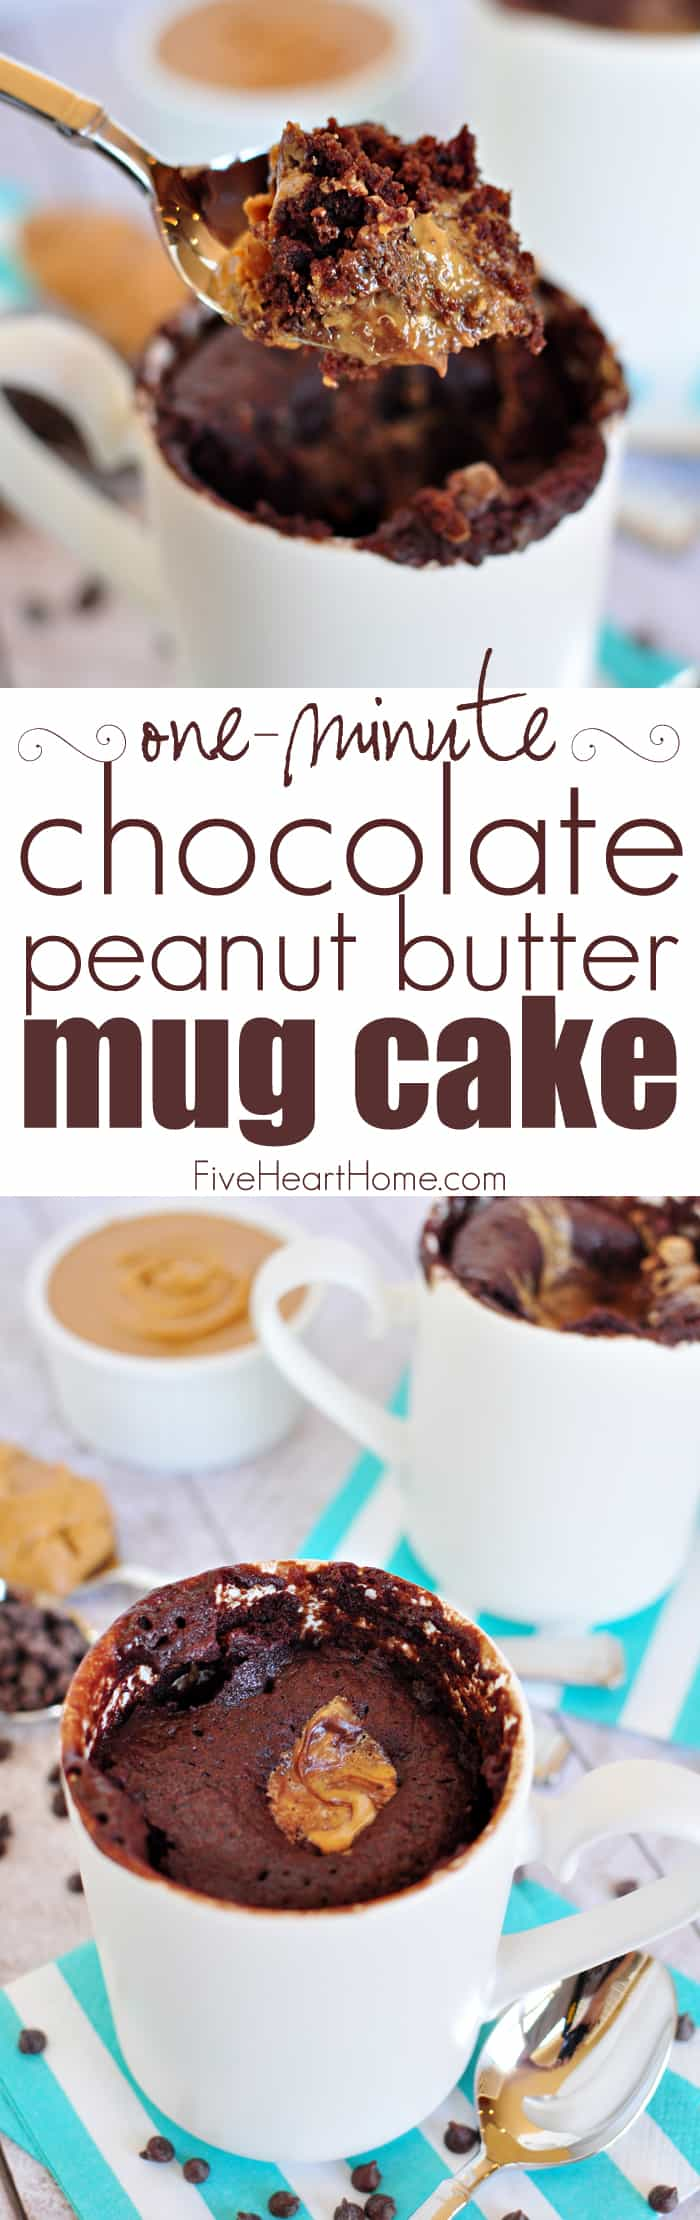 One-Minute Chocolate Peanut Butter Mug Cake Collage with Text Overlay